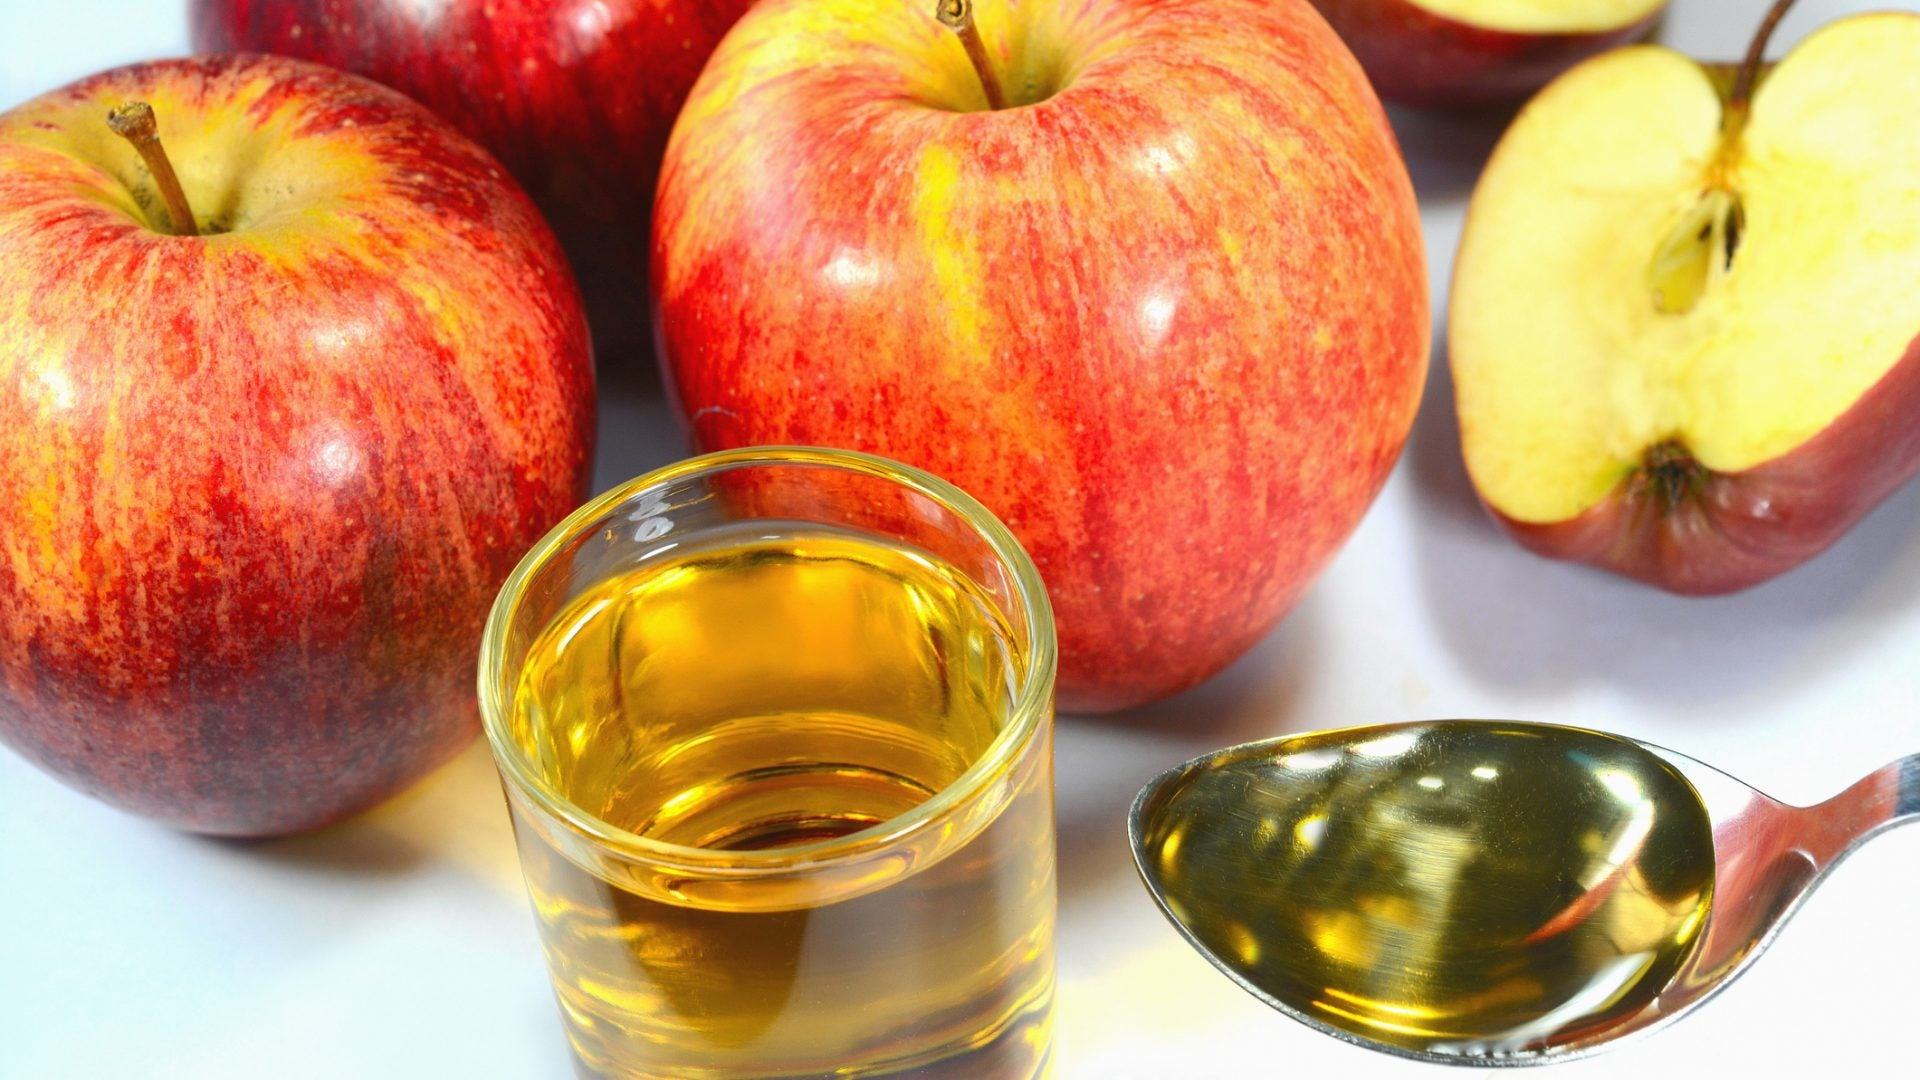 Uncover All The Benefits Of Apple Cider With These Gummies